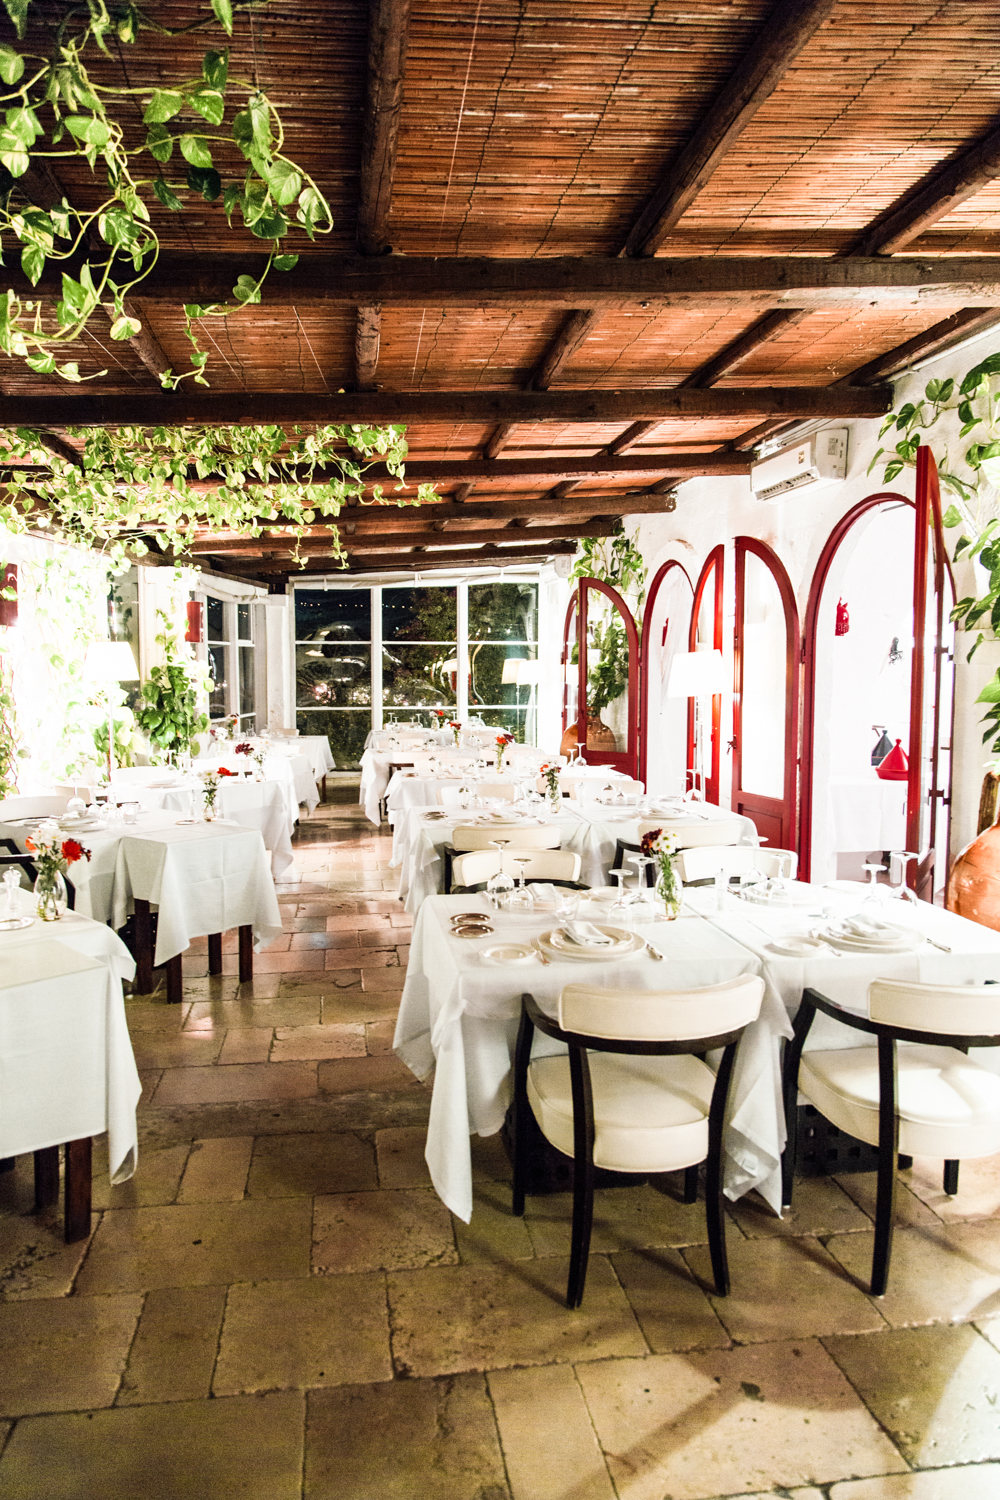 Fine Dining Cuisine and Food at Masseria Torre Coccaro in Puglia, Italy (2 of 17).jpg